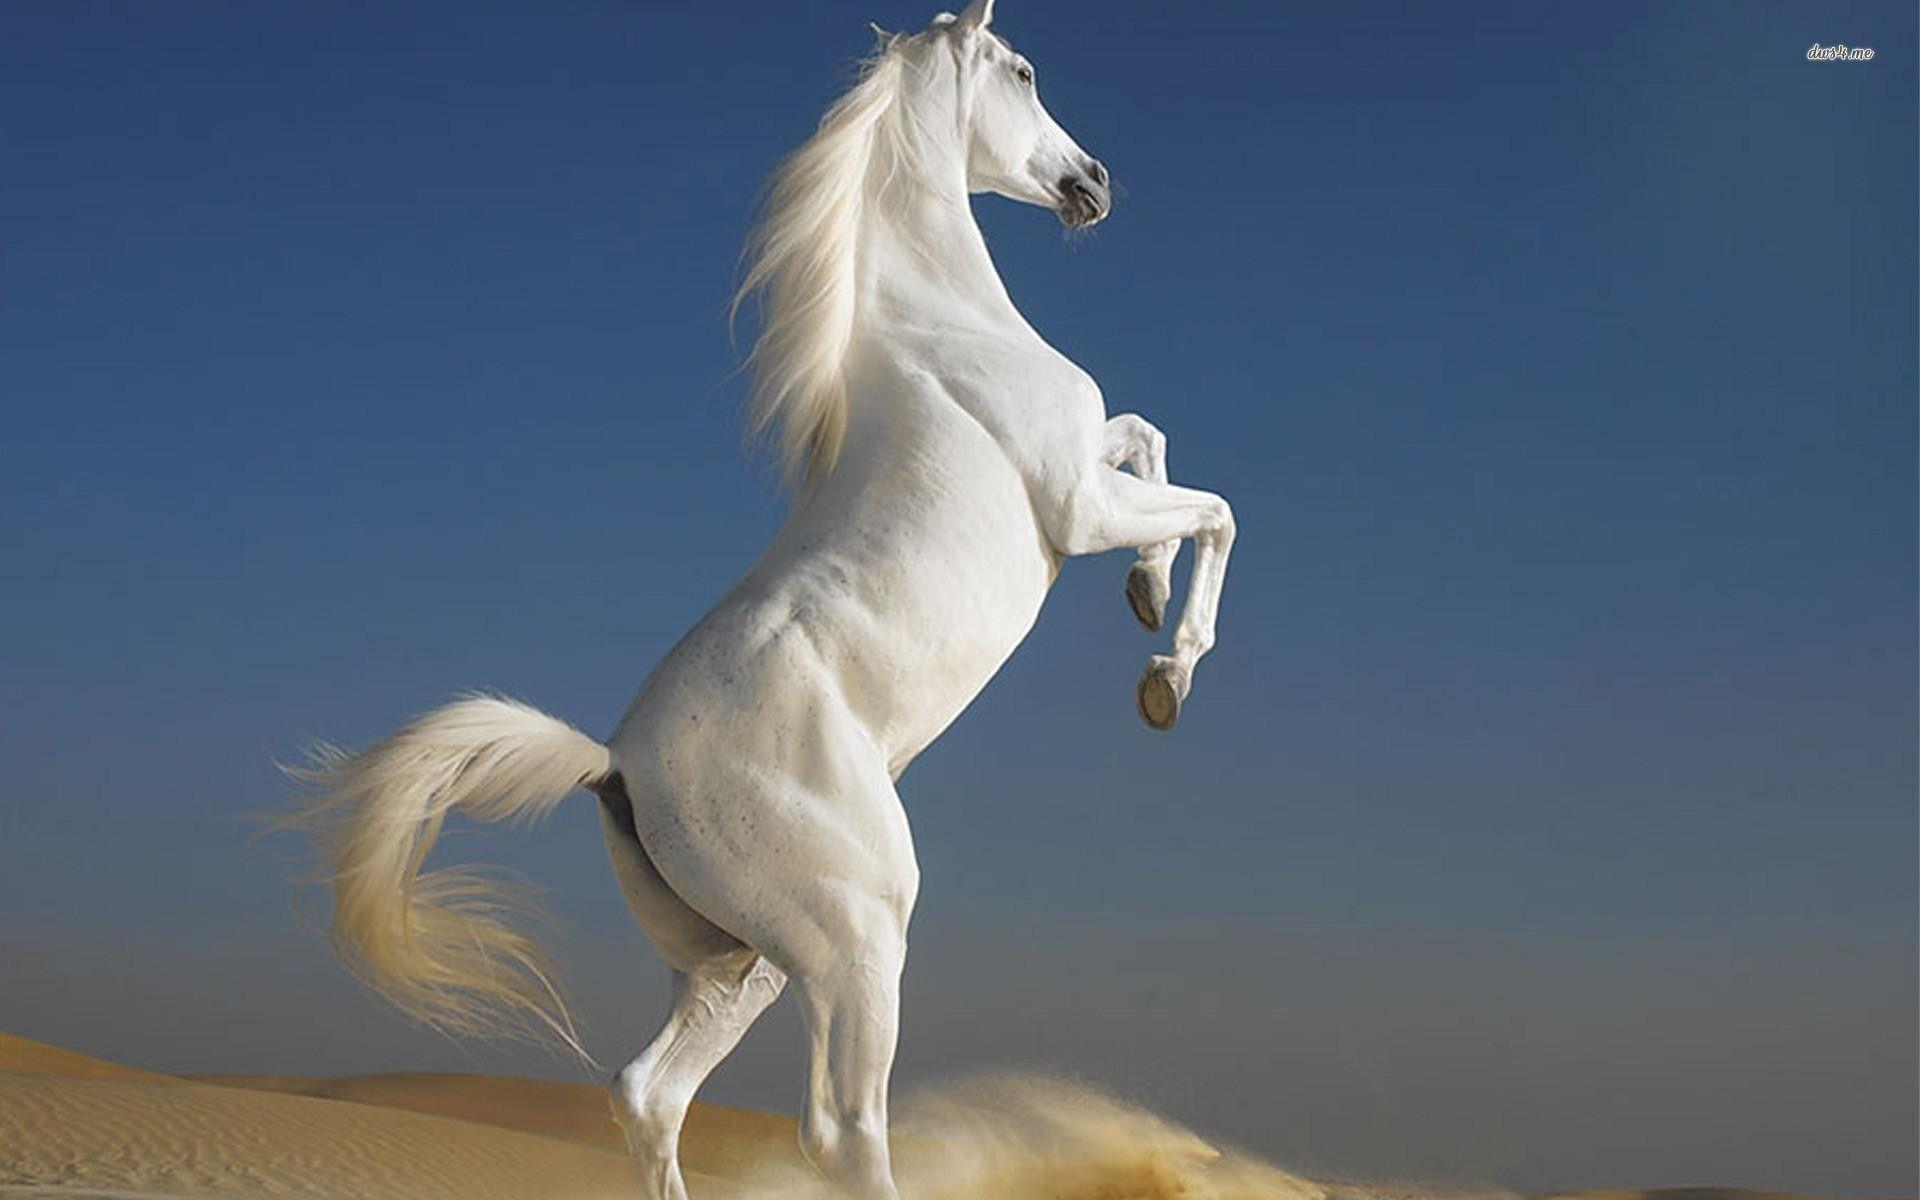 White horse wallpapers wallpaper cave white horse sky hd wallpaper altavistaventures Image collections